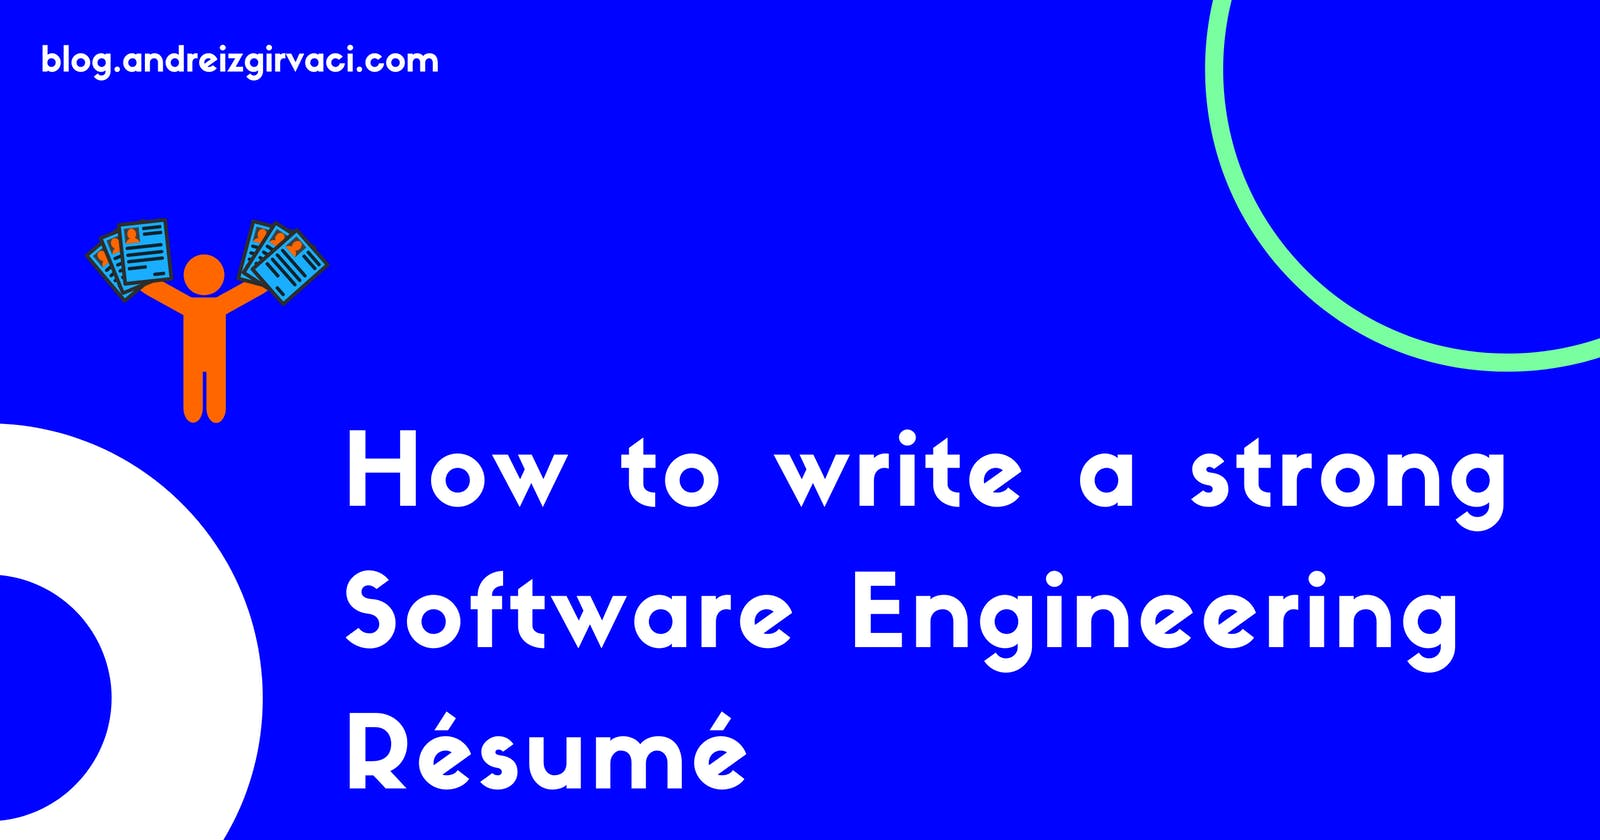 How to write a strong Software Engineering Résumé! 📝